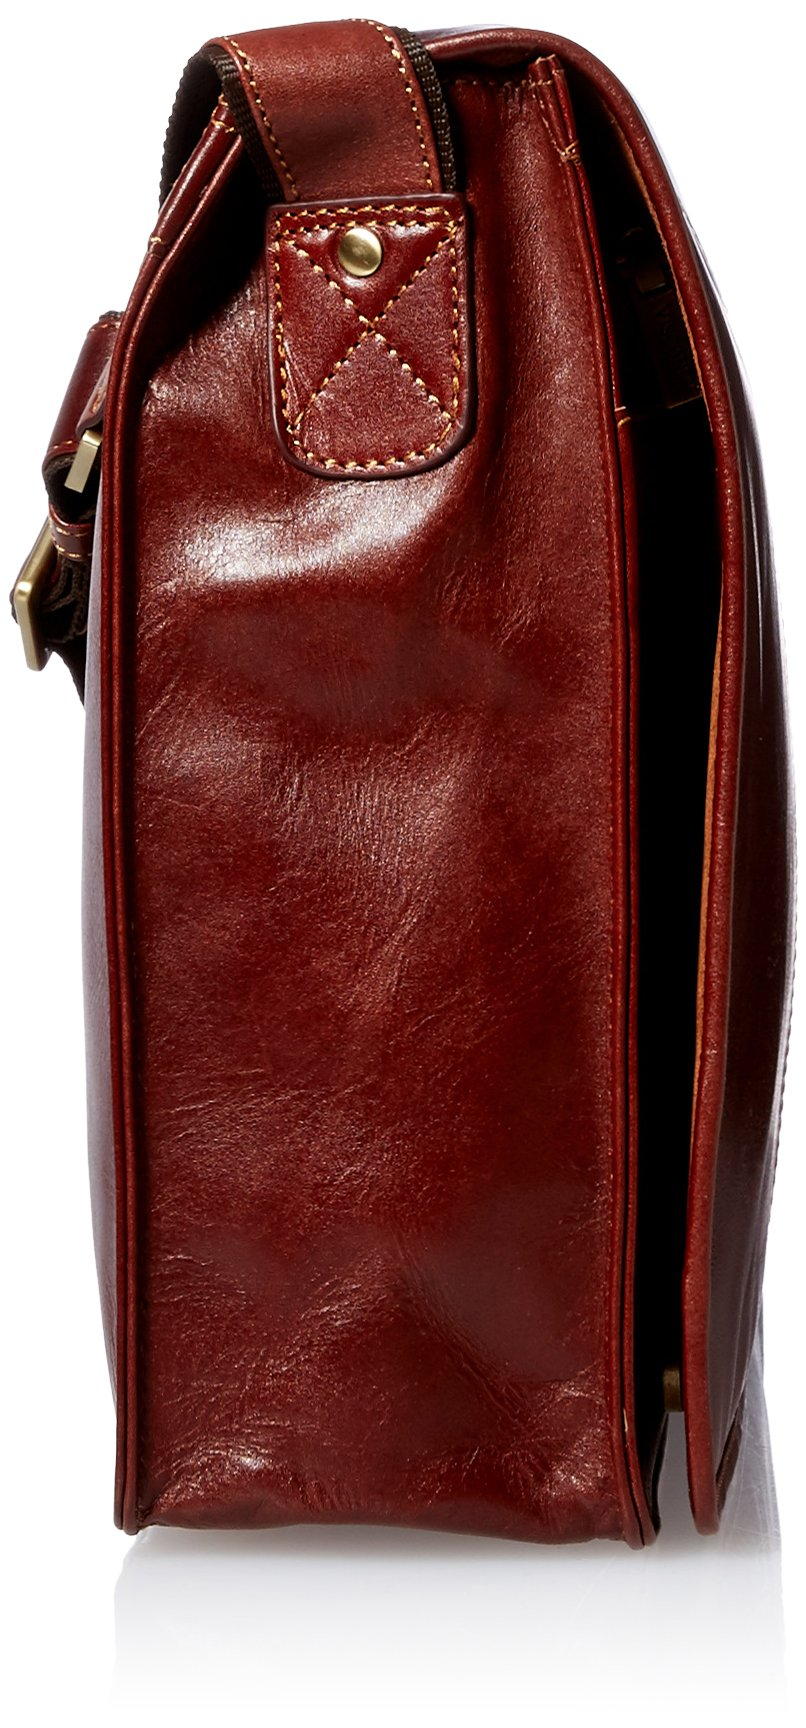 Visconti Vintage-7 Veg Tan Brown Soft Leather Messenger Bag Case, Brown, One Size by Visconti (Image #3)